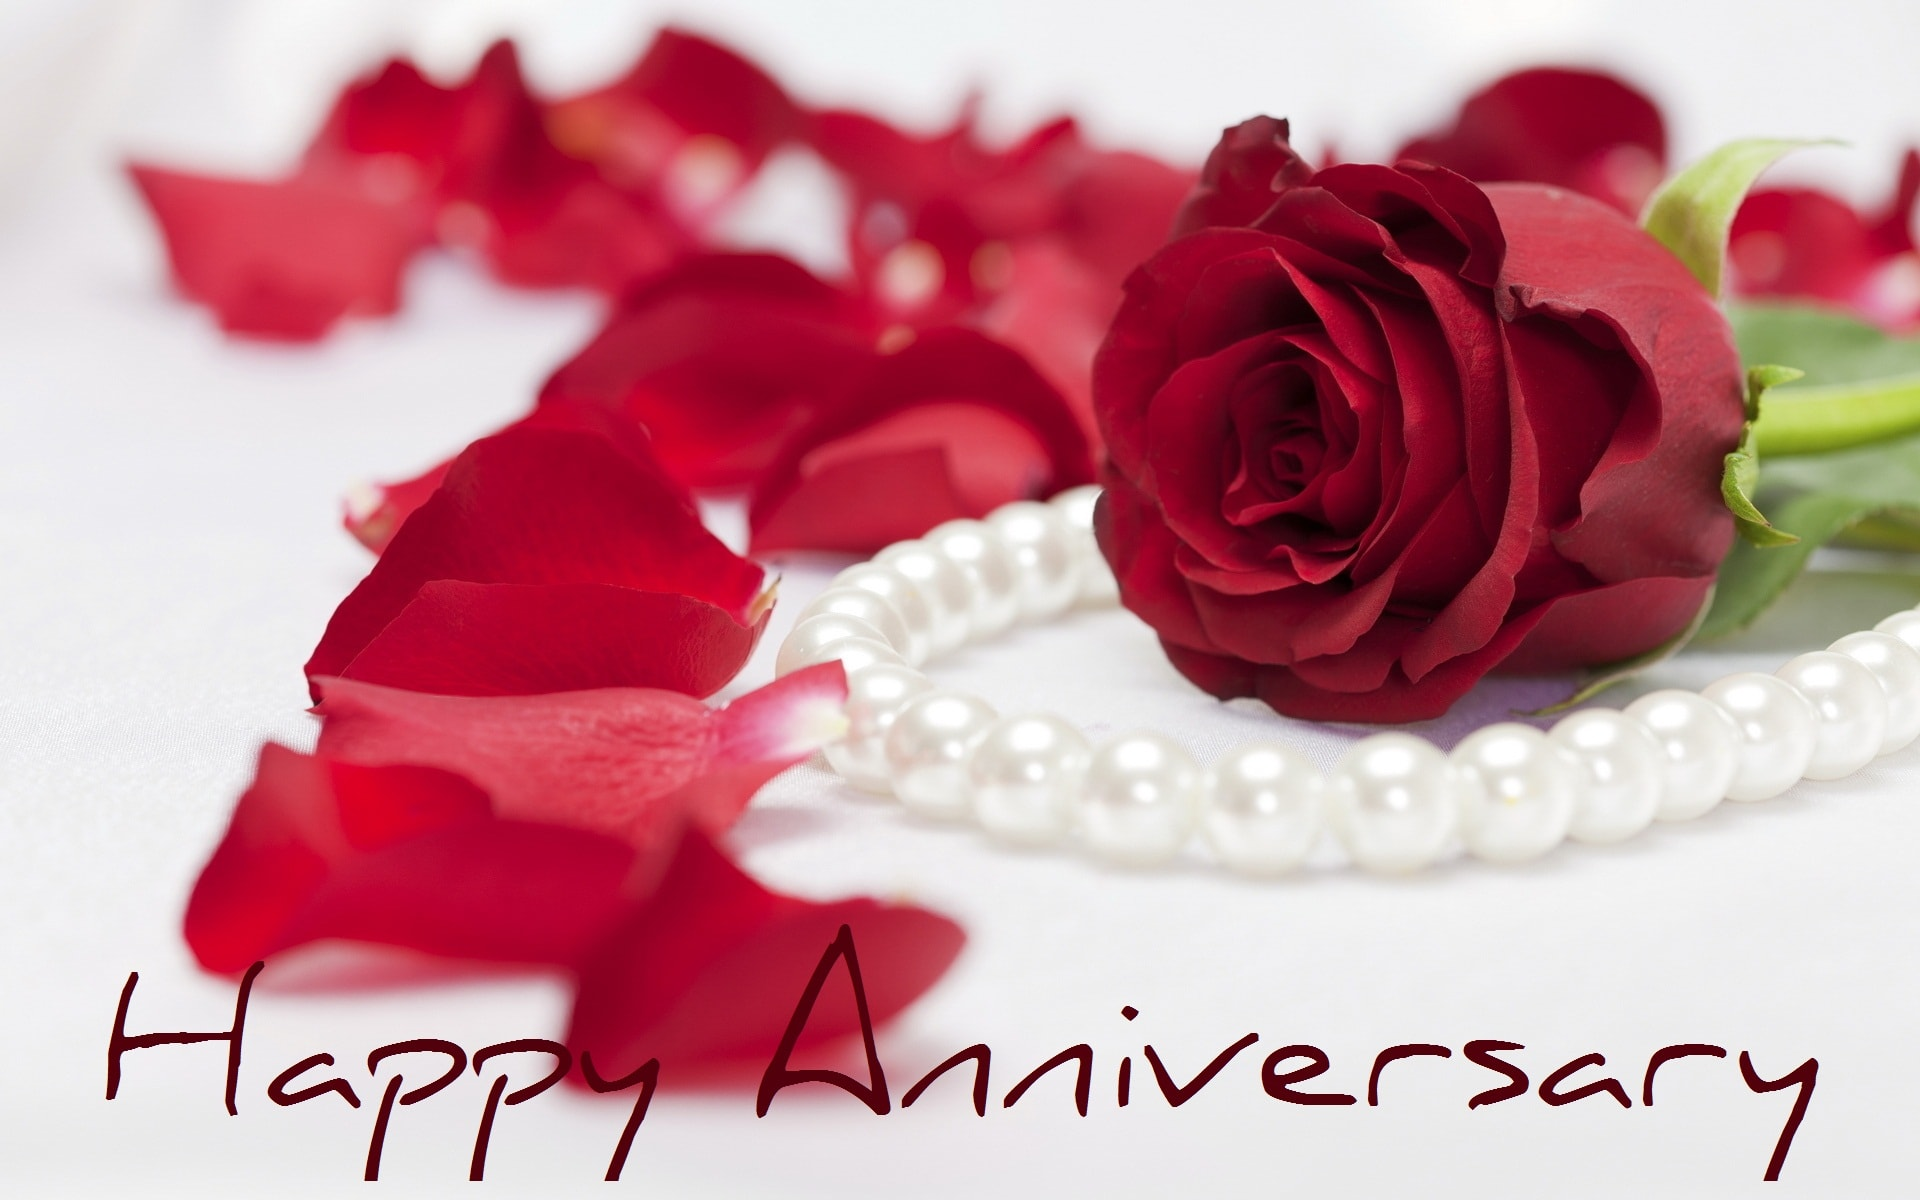 Happy anniversary images wallpapers download meme blog happy anniversary images voltagebd Choice Image